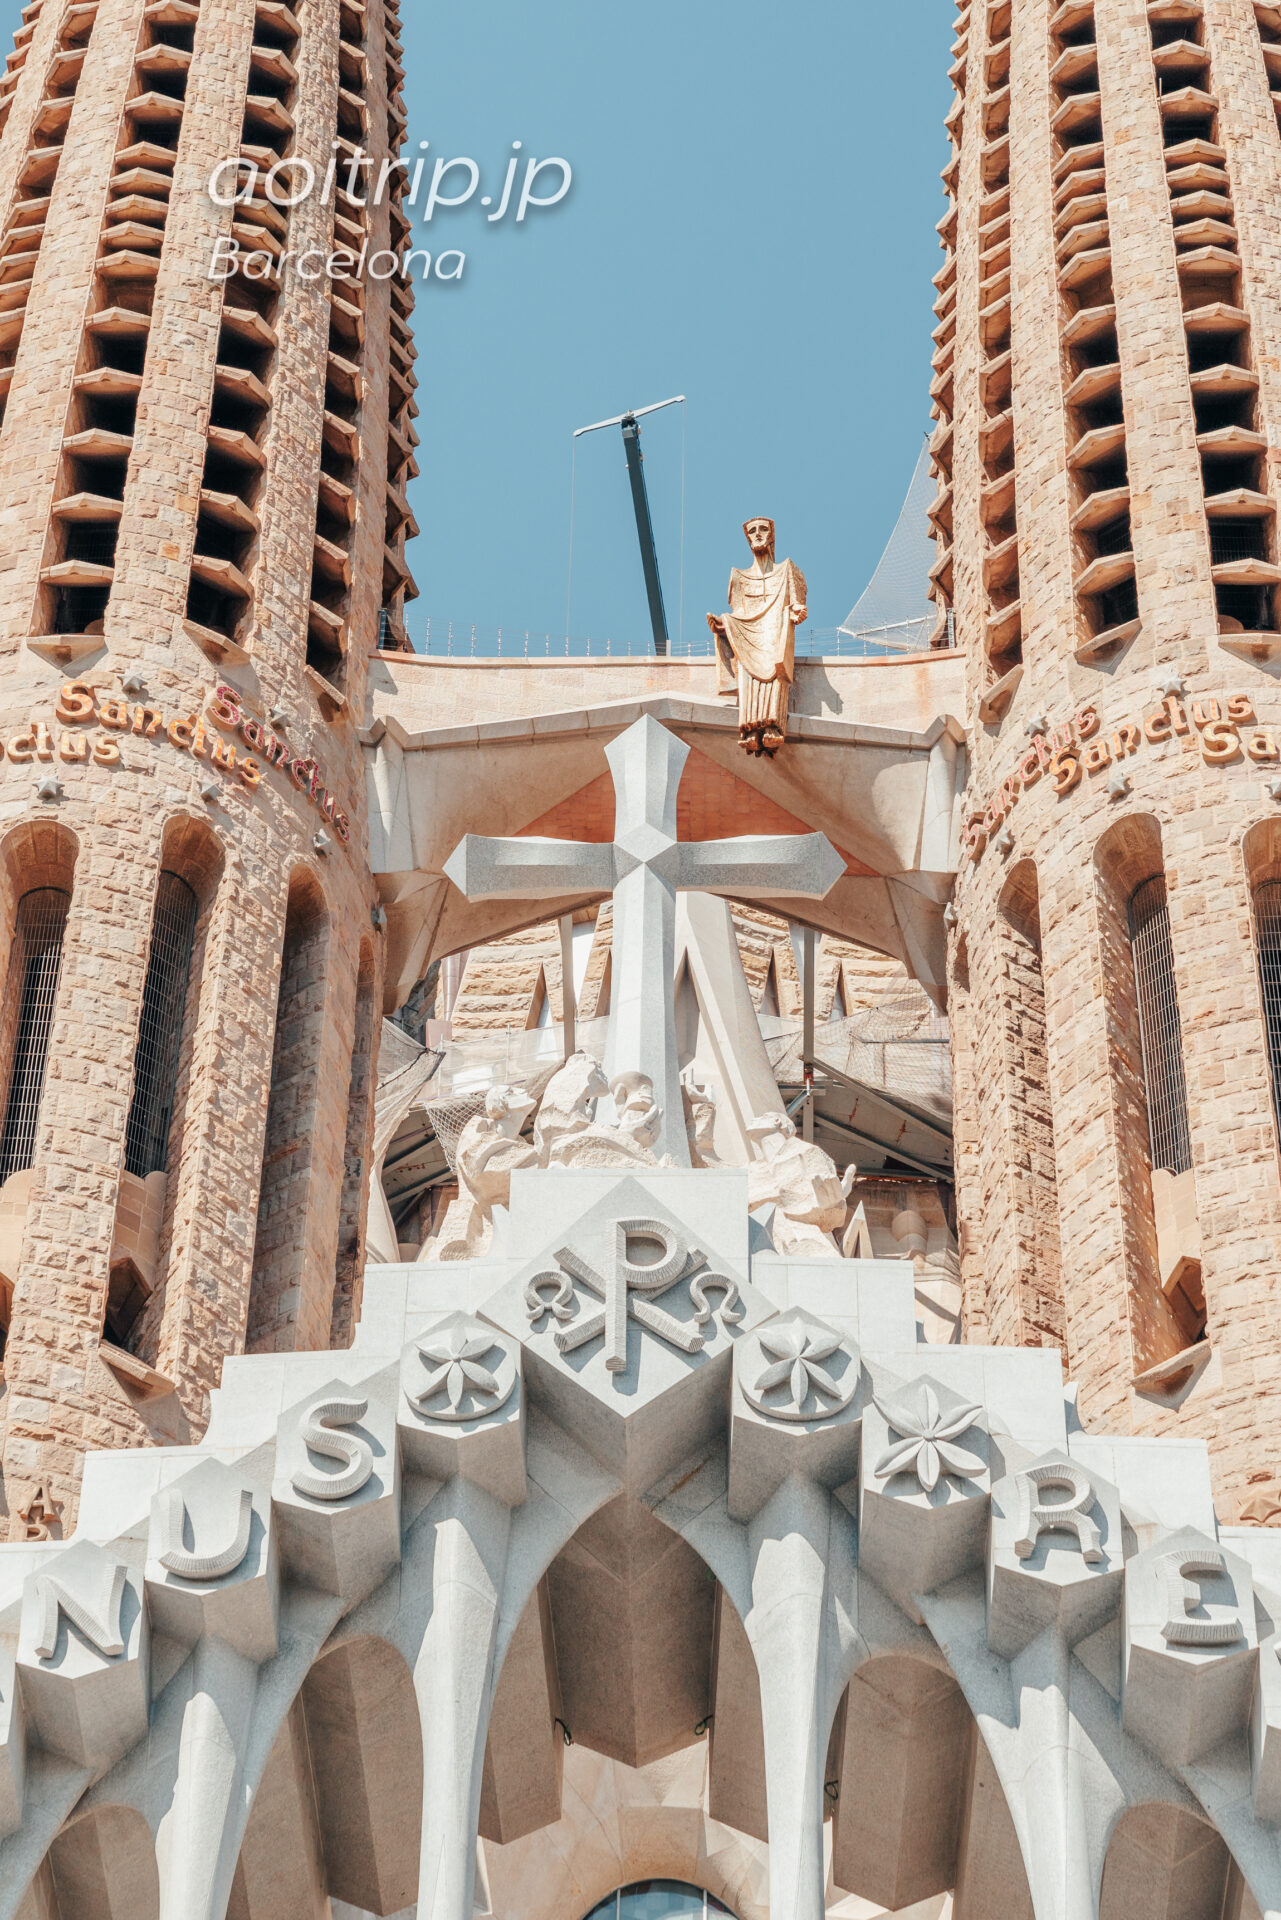 Basílica de la Sagrada Família(Façana de la Passió, The ascension of Jesus)